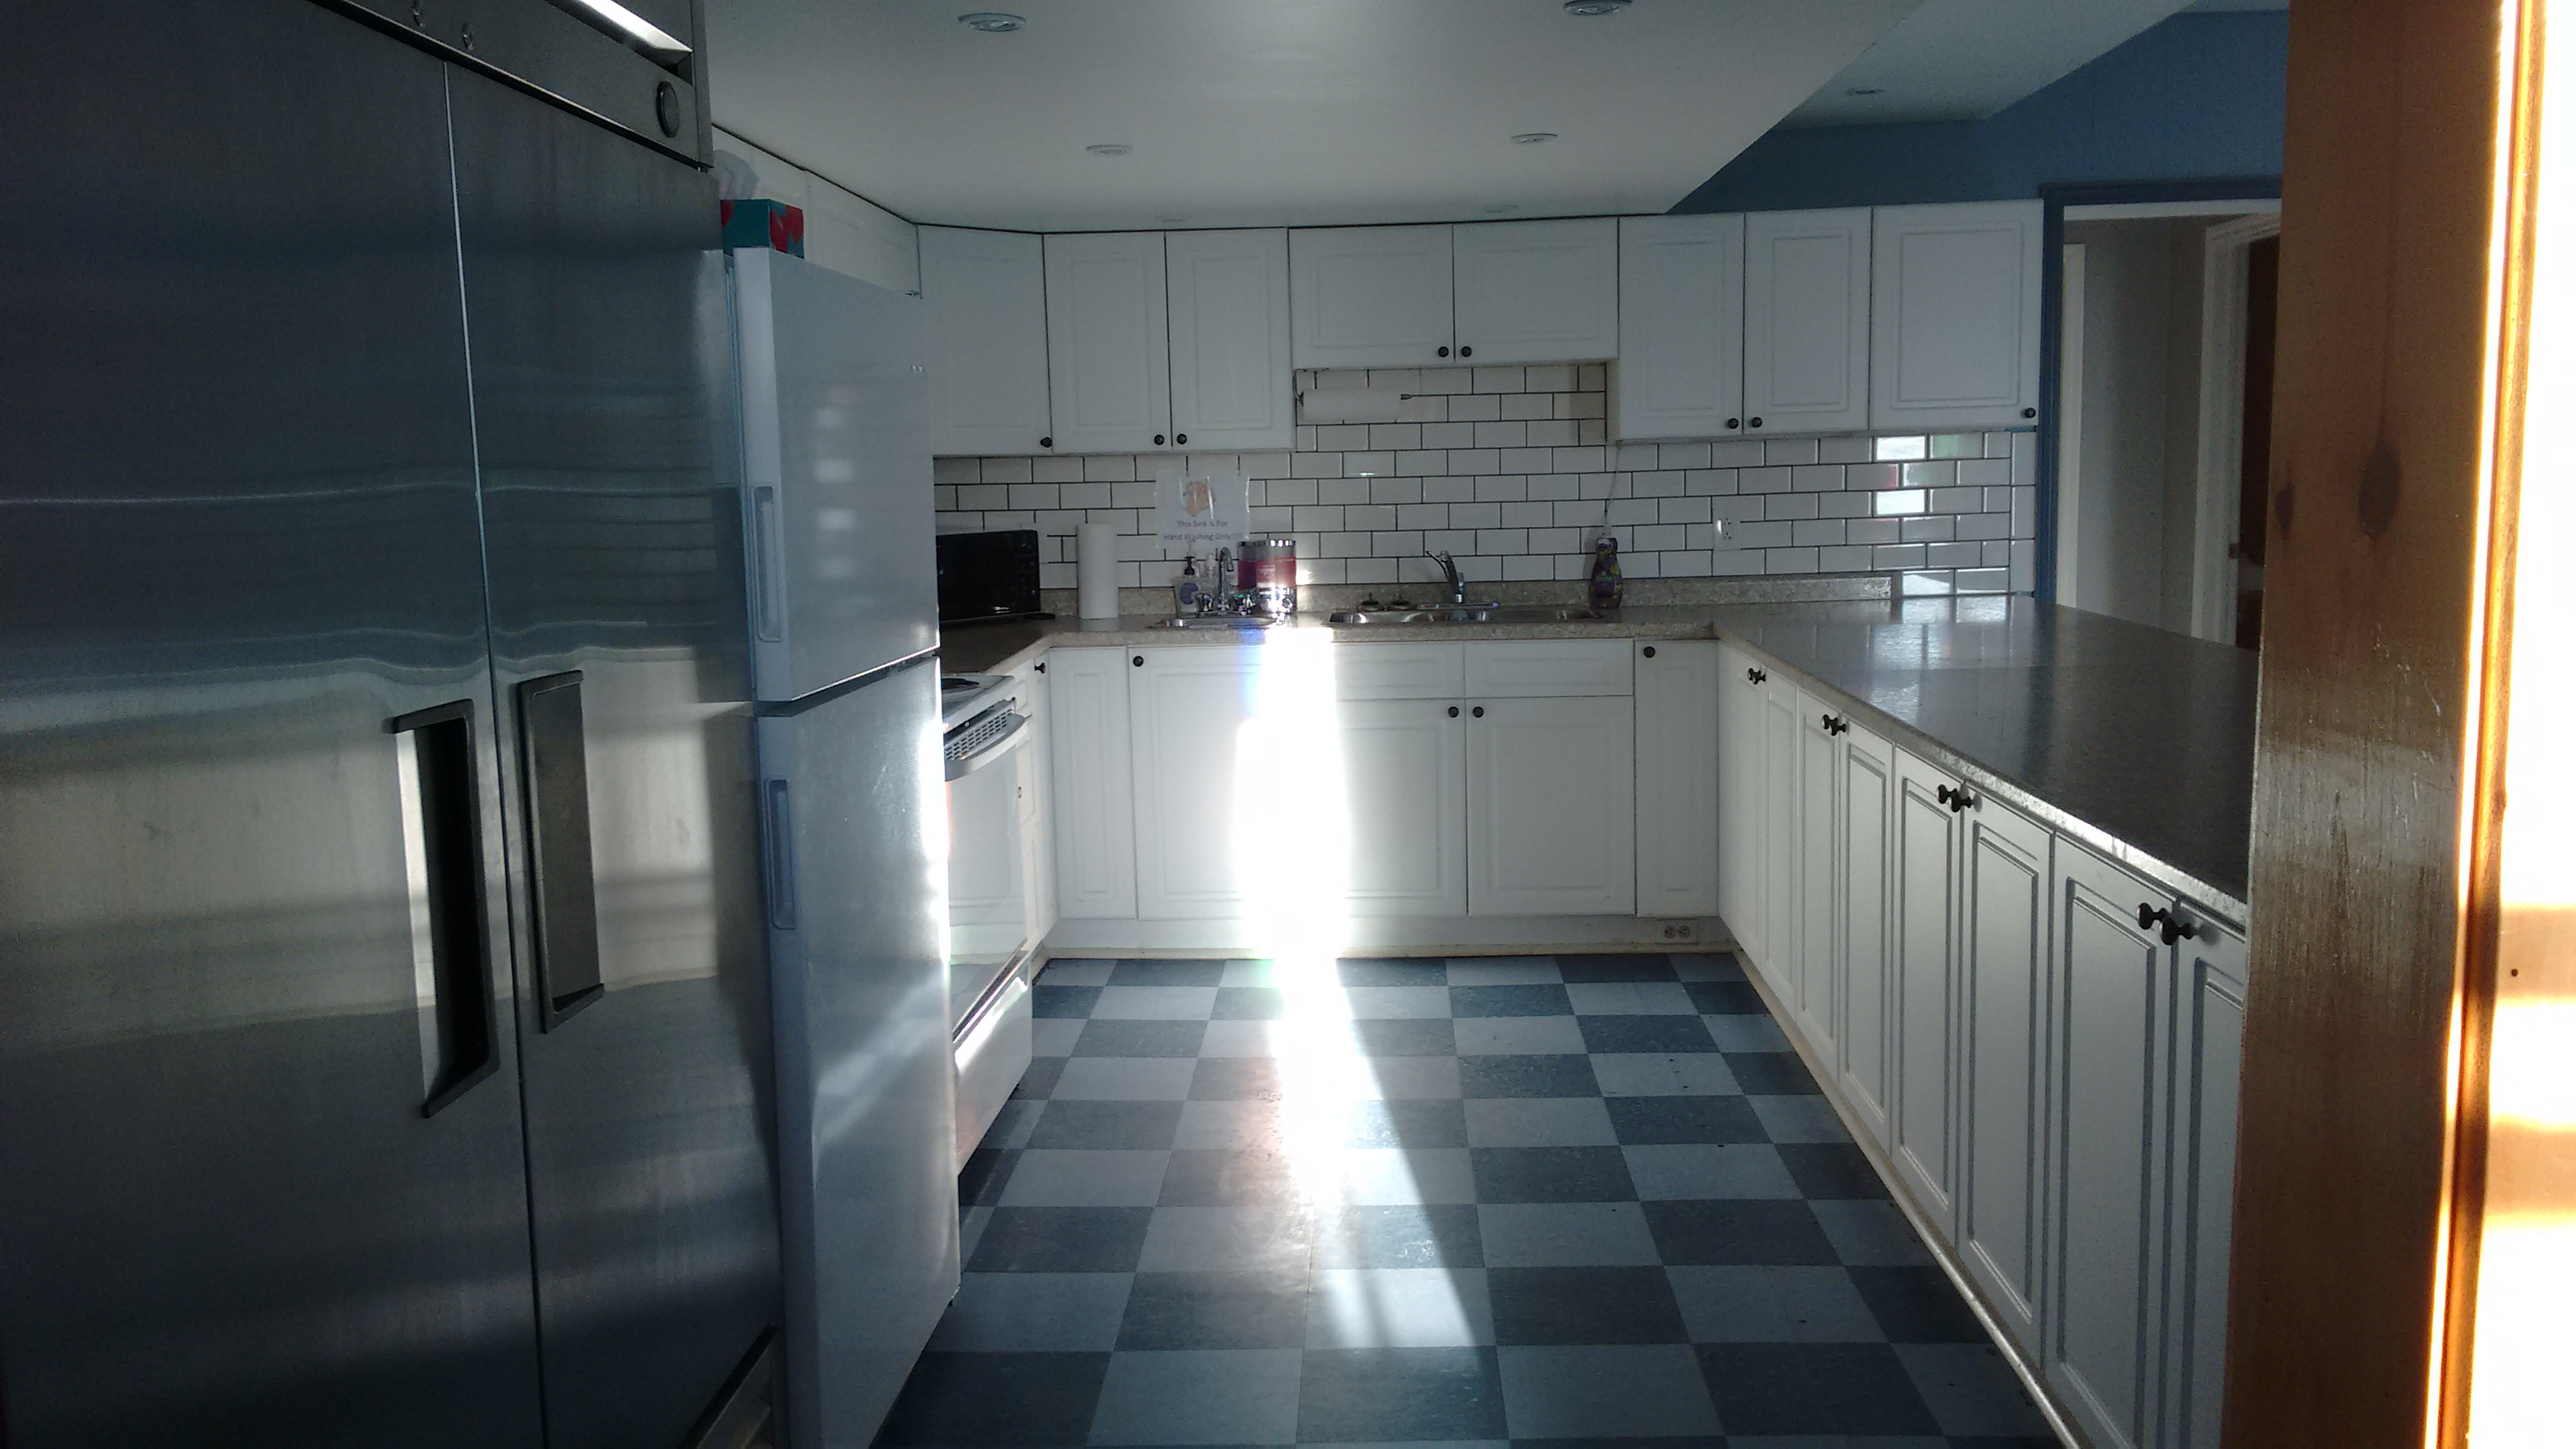 u-shaped room with 2 fridges, a stove, a sink and cupboards